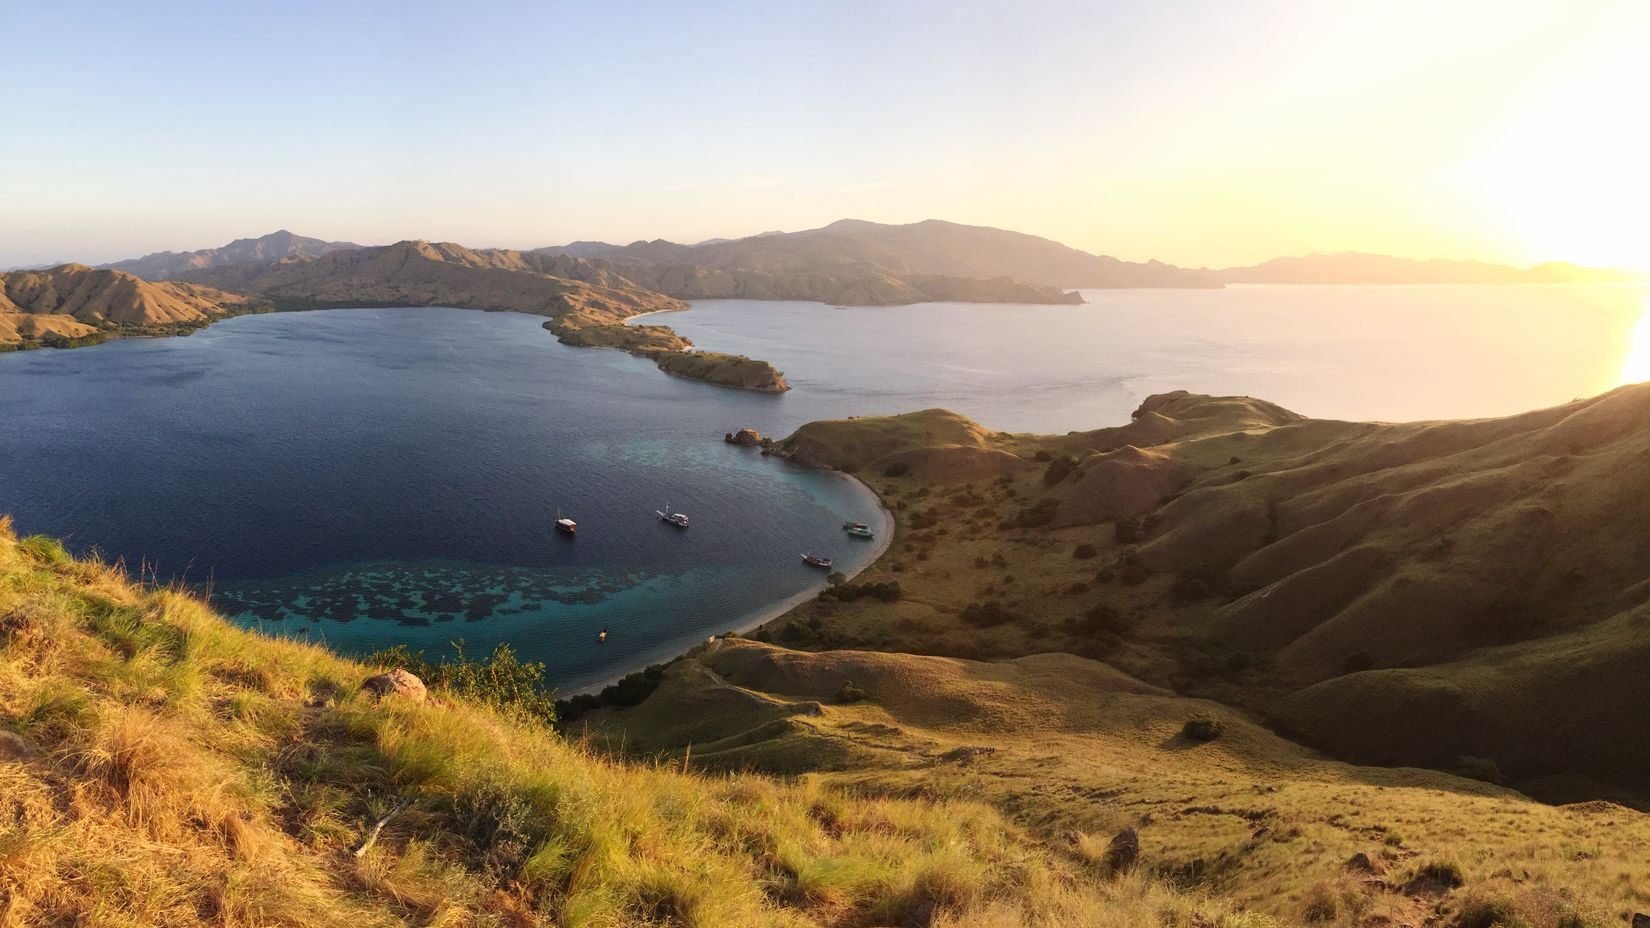 Tiring steep trek to the top but this view's so worth it 😍 Hello World Enjoying Life INDONESIA Flores Komodo Nature Enjoying The View Scenery Topography Landscape